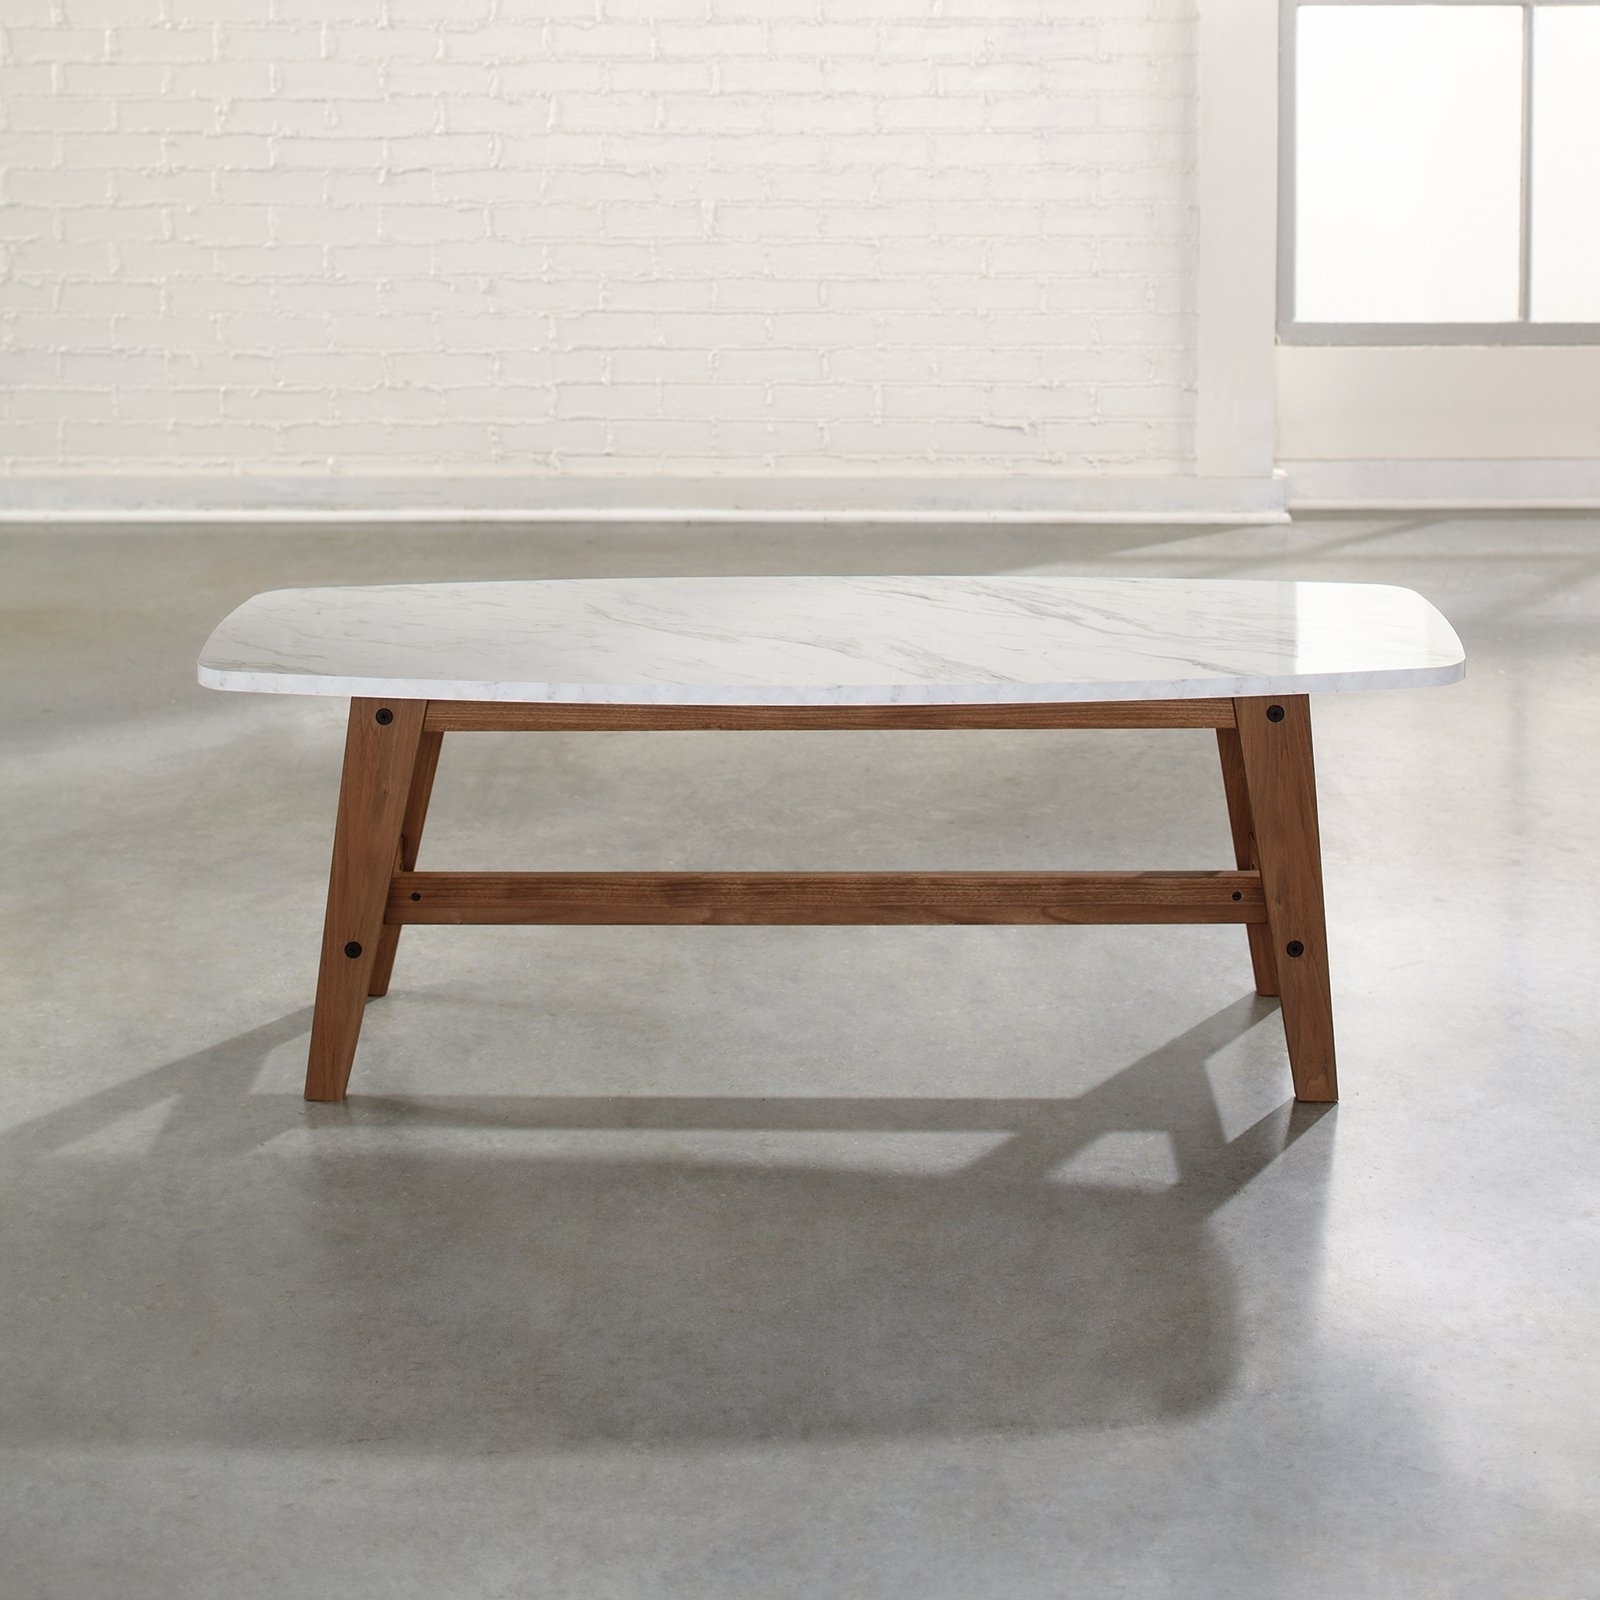 Choose The Best White Marble Coffee Table — The Home Redesign within Mid-Century Modern Marble Coffee Tables (Image 6 of 30)